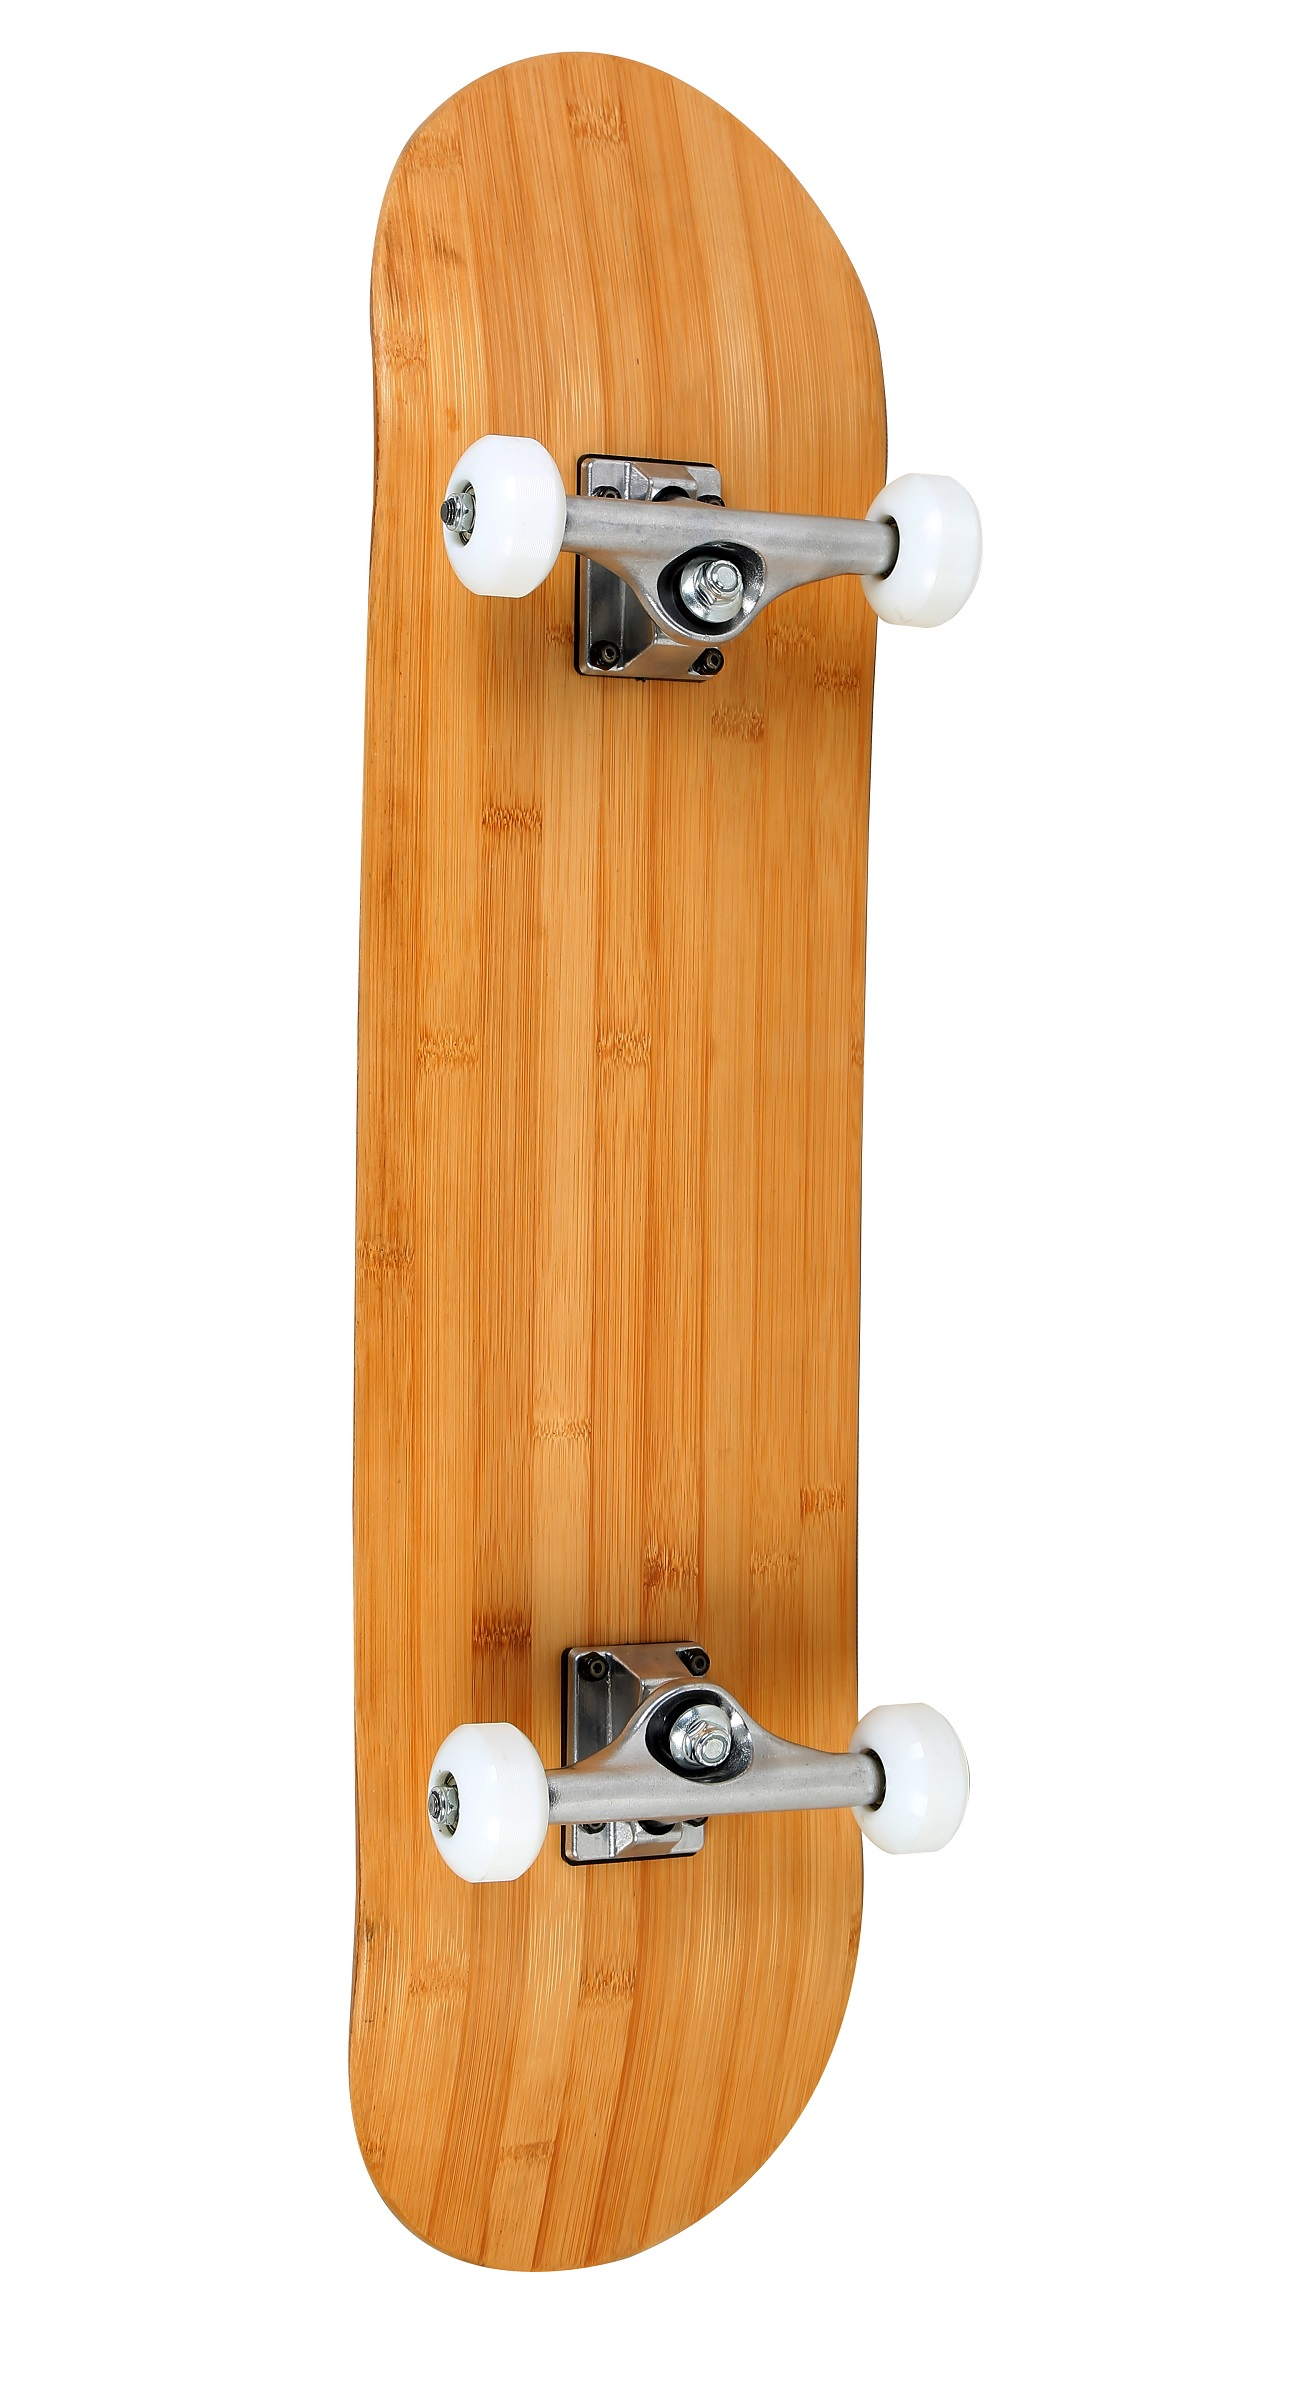 Promo Bamboo Skateboards